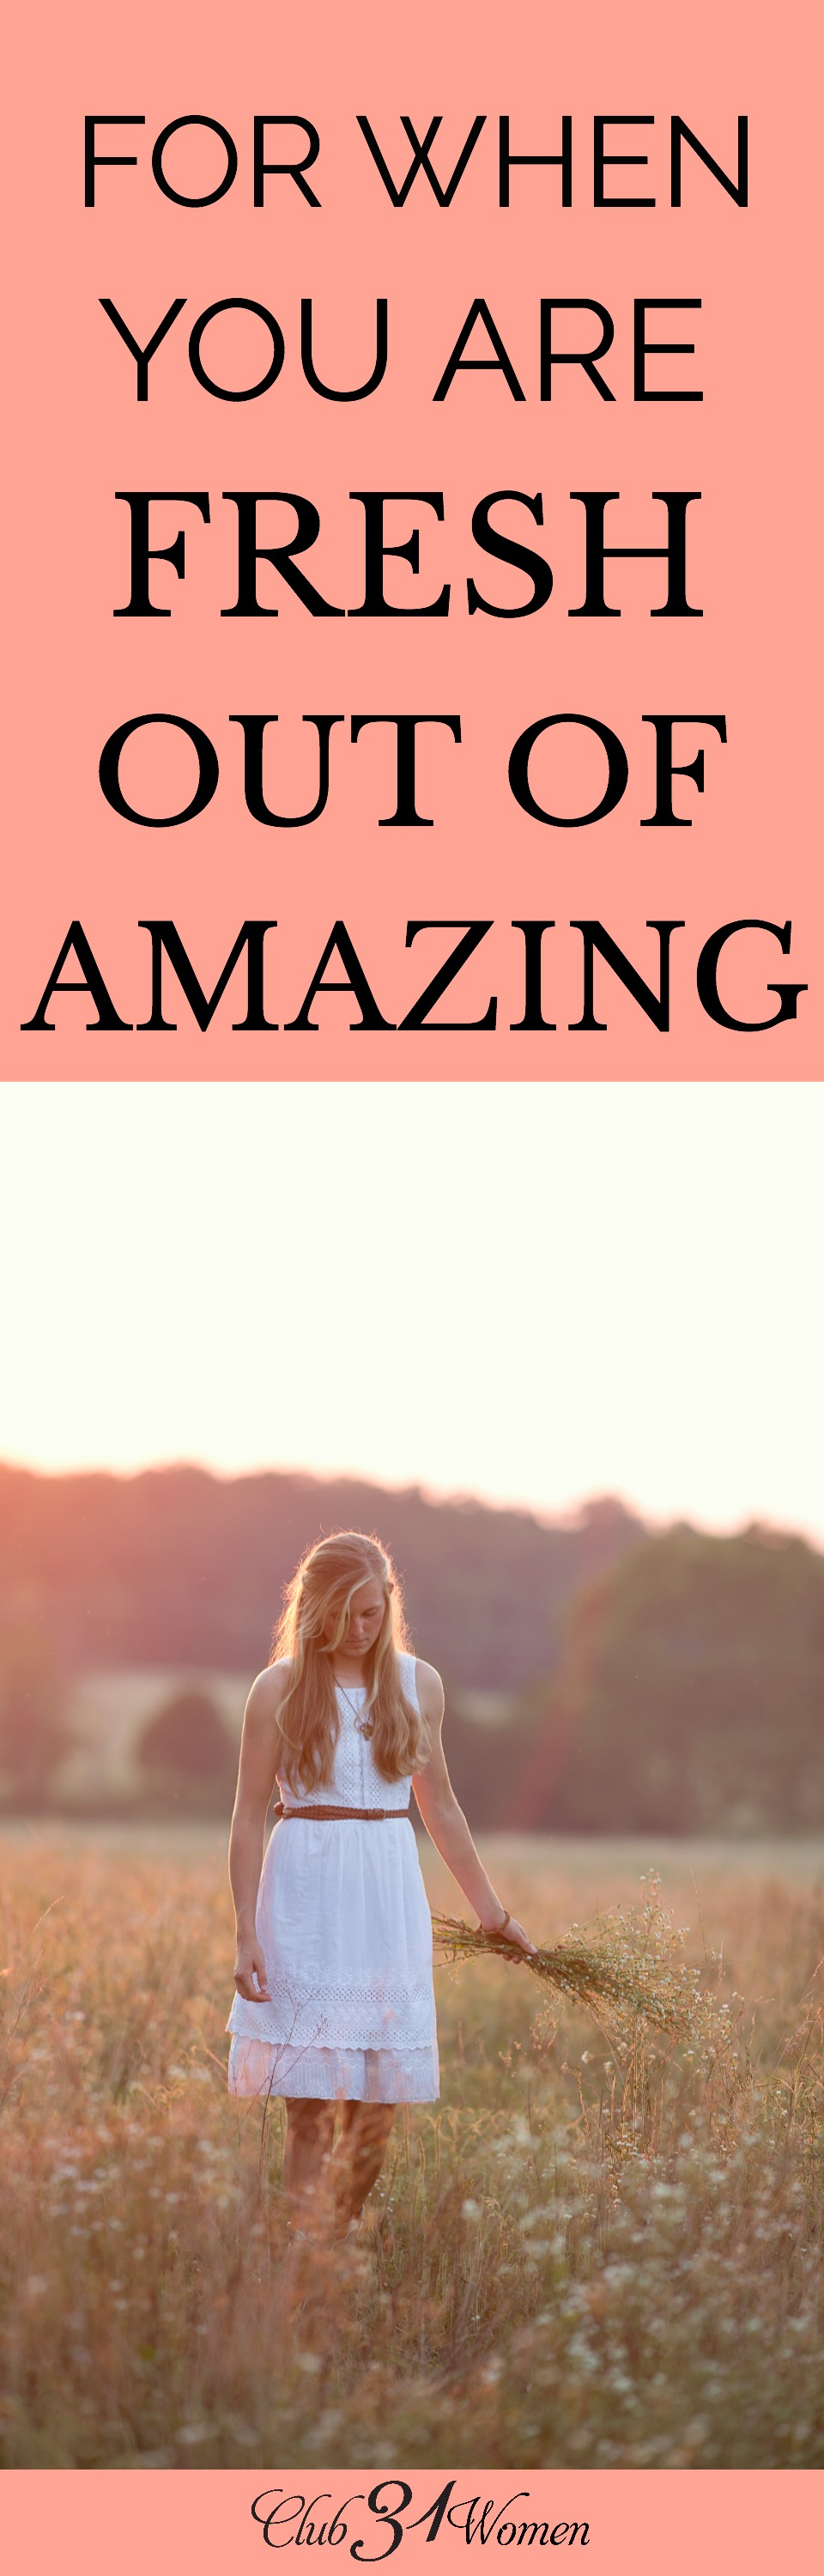 It's OK to admit when you've run out of amazing. There are times we need to raise that white flag and let the expectations of people go. via @Club31Women